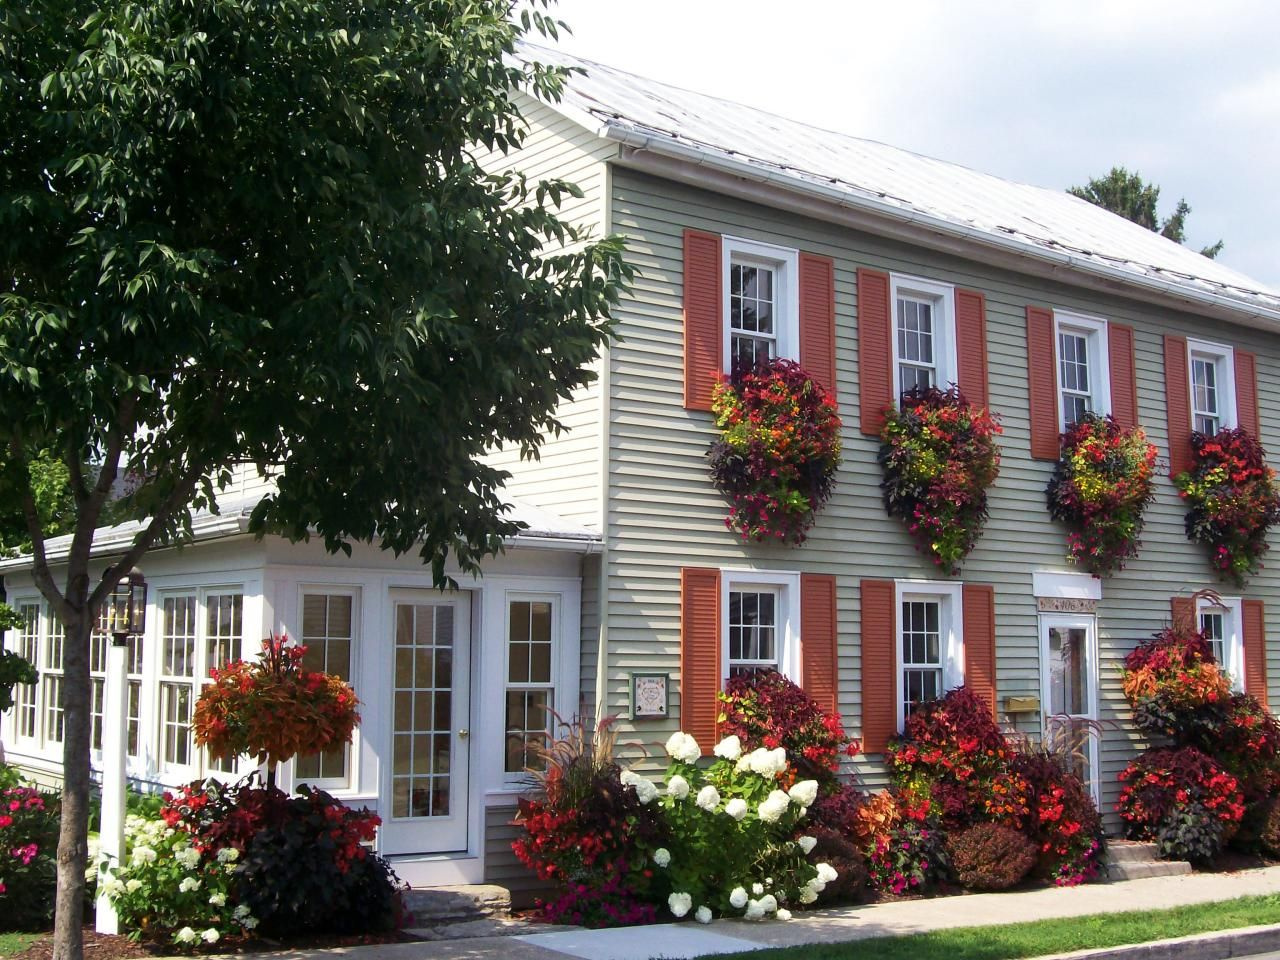 20 Ideas for Adding Curb Appeal to Your Home | Small front ...